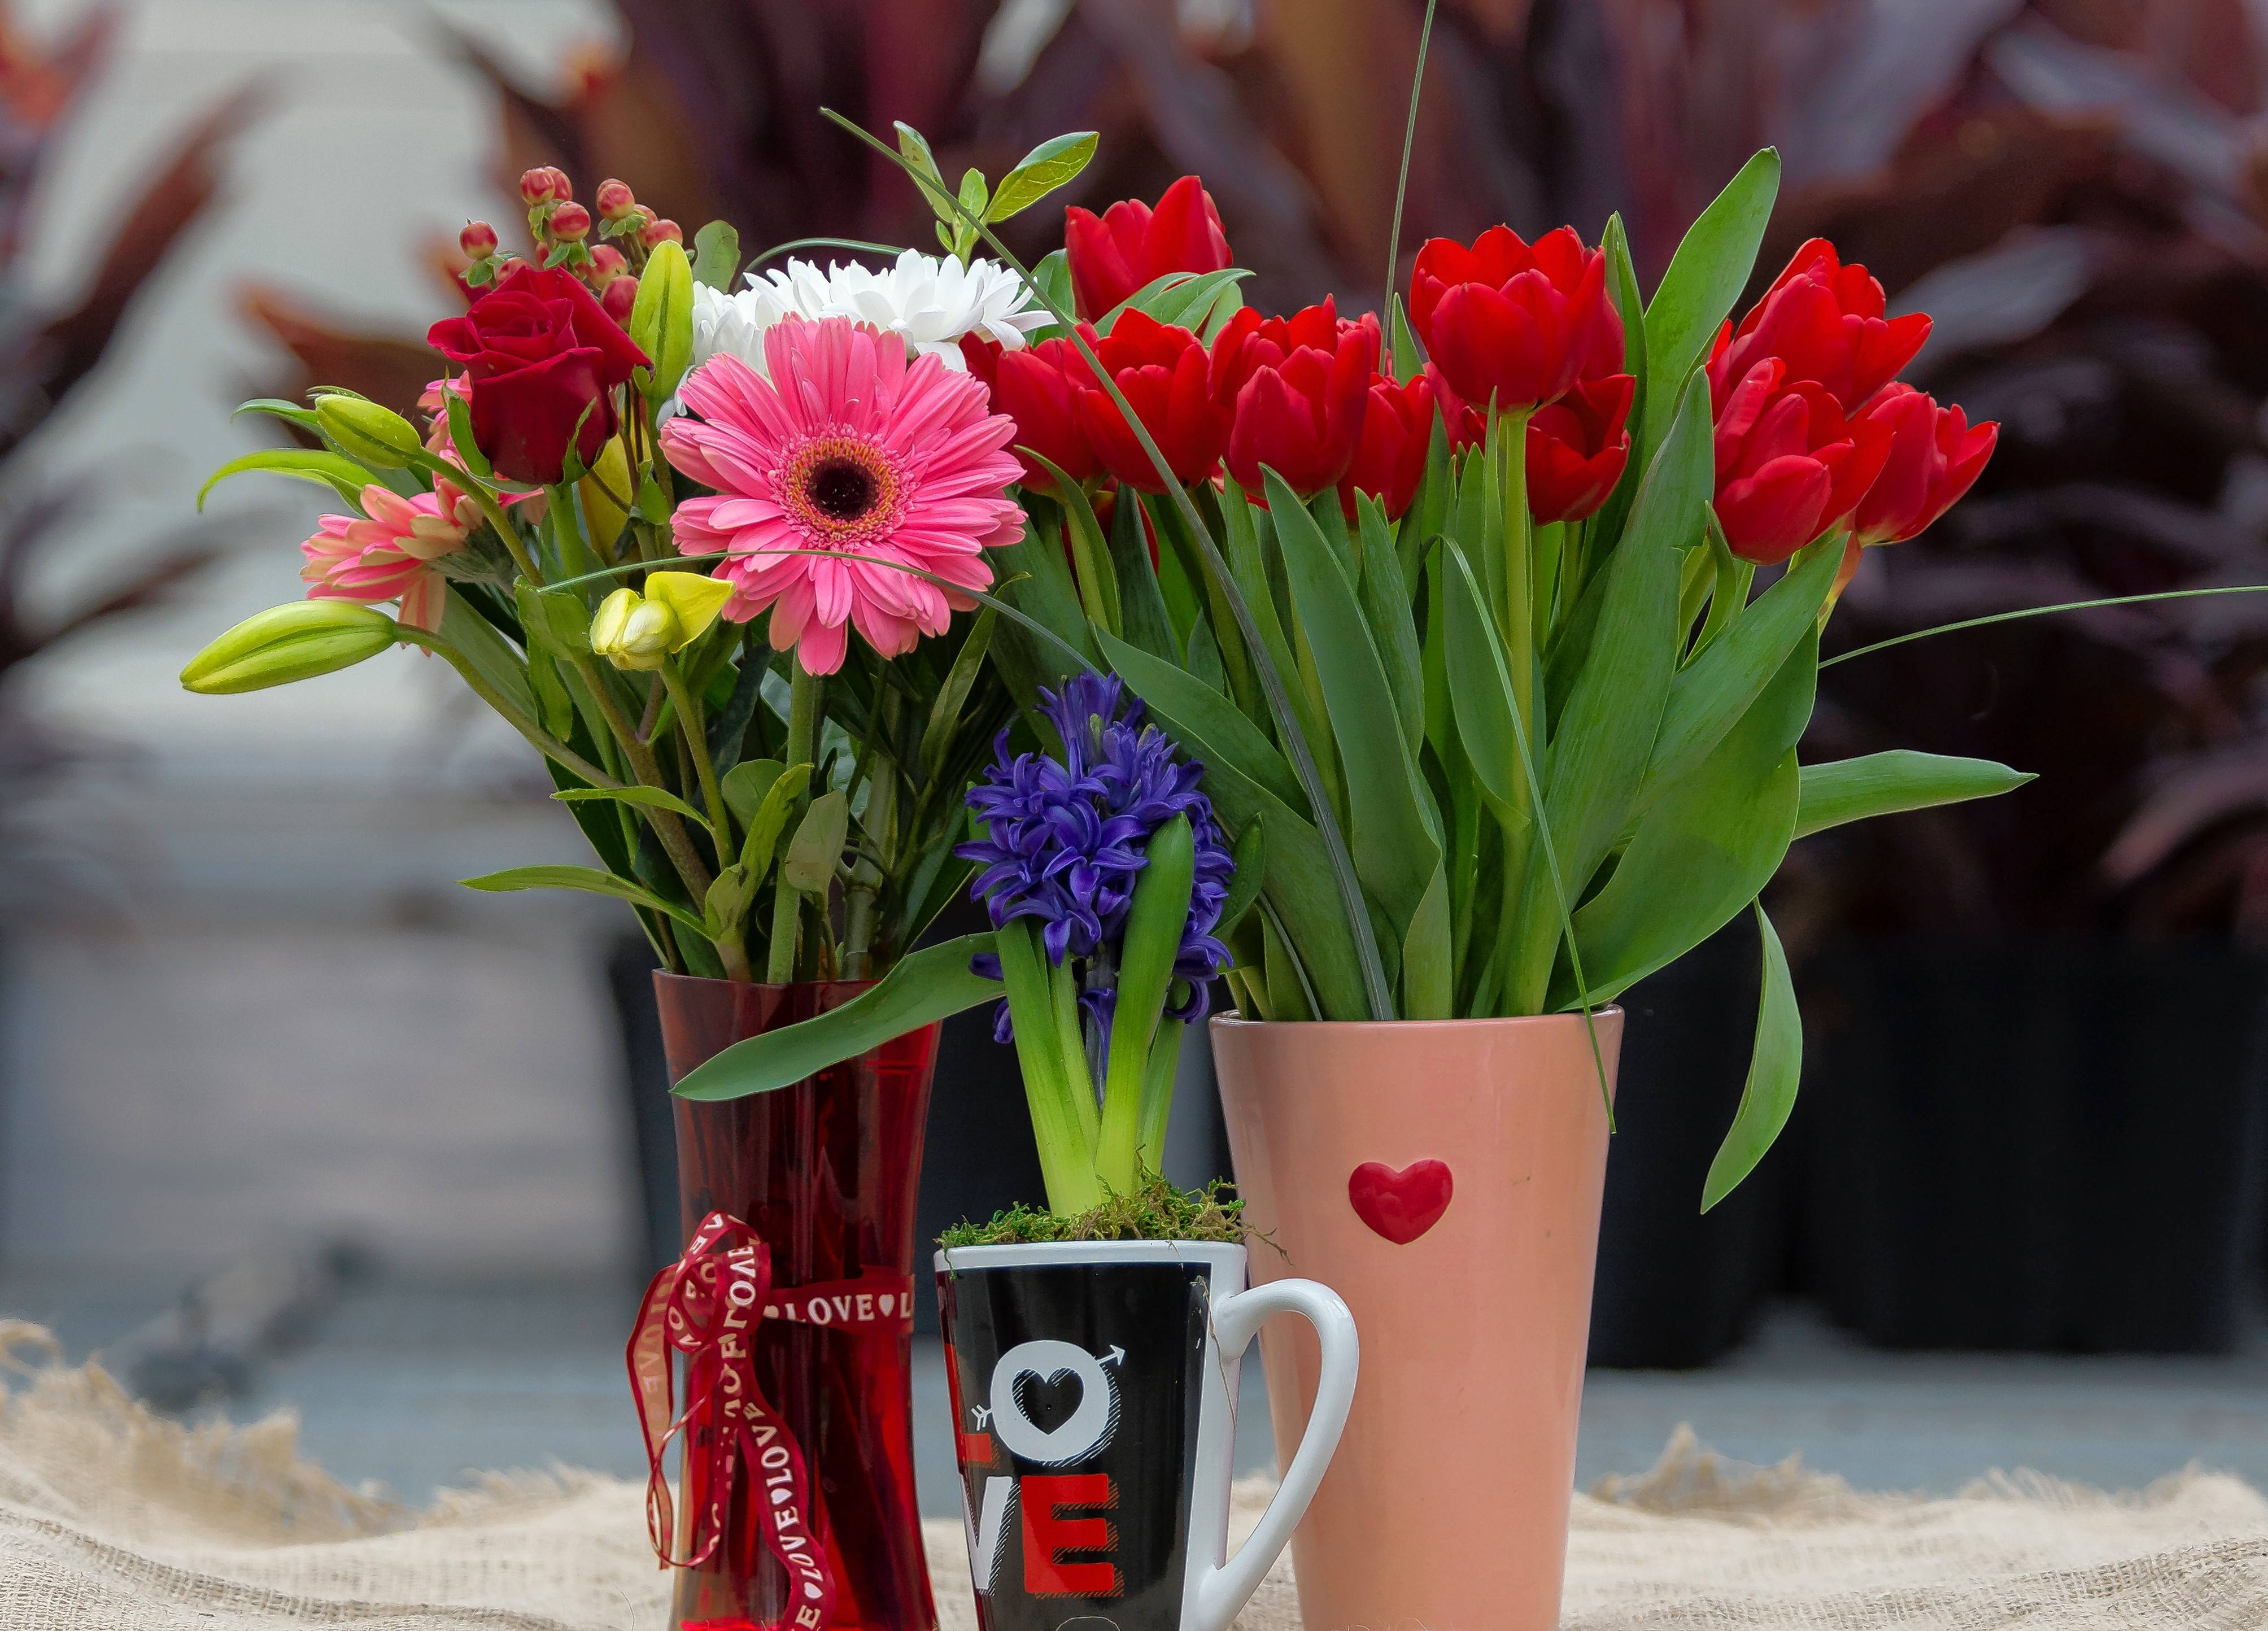 To keep Valentine's Day cut flowers fresh, protect them from freezing temperatures in transit and place them in room-temperature water as soon as possible.